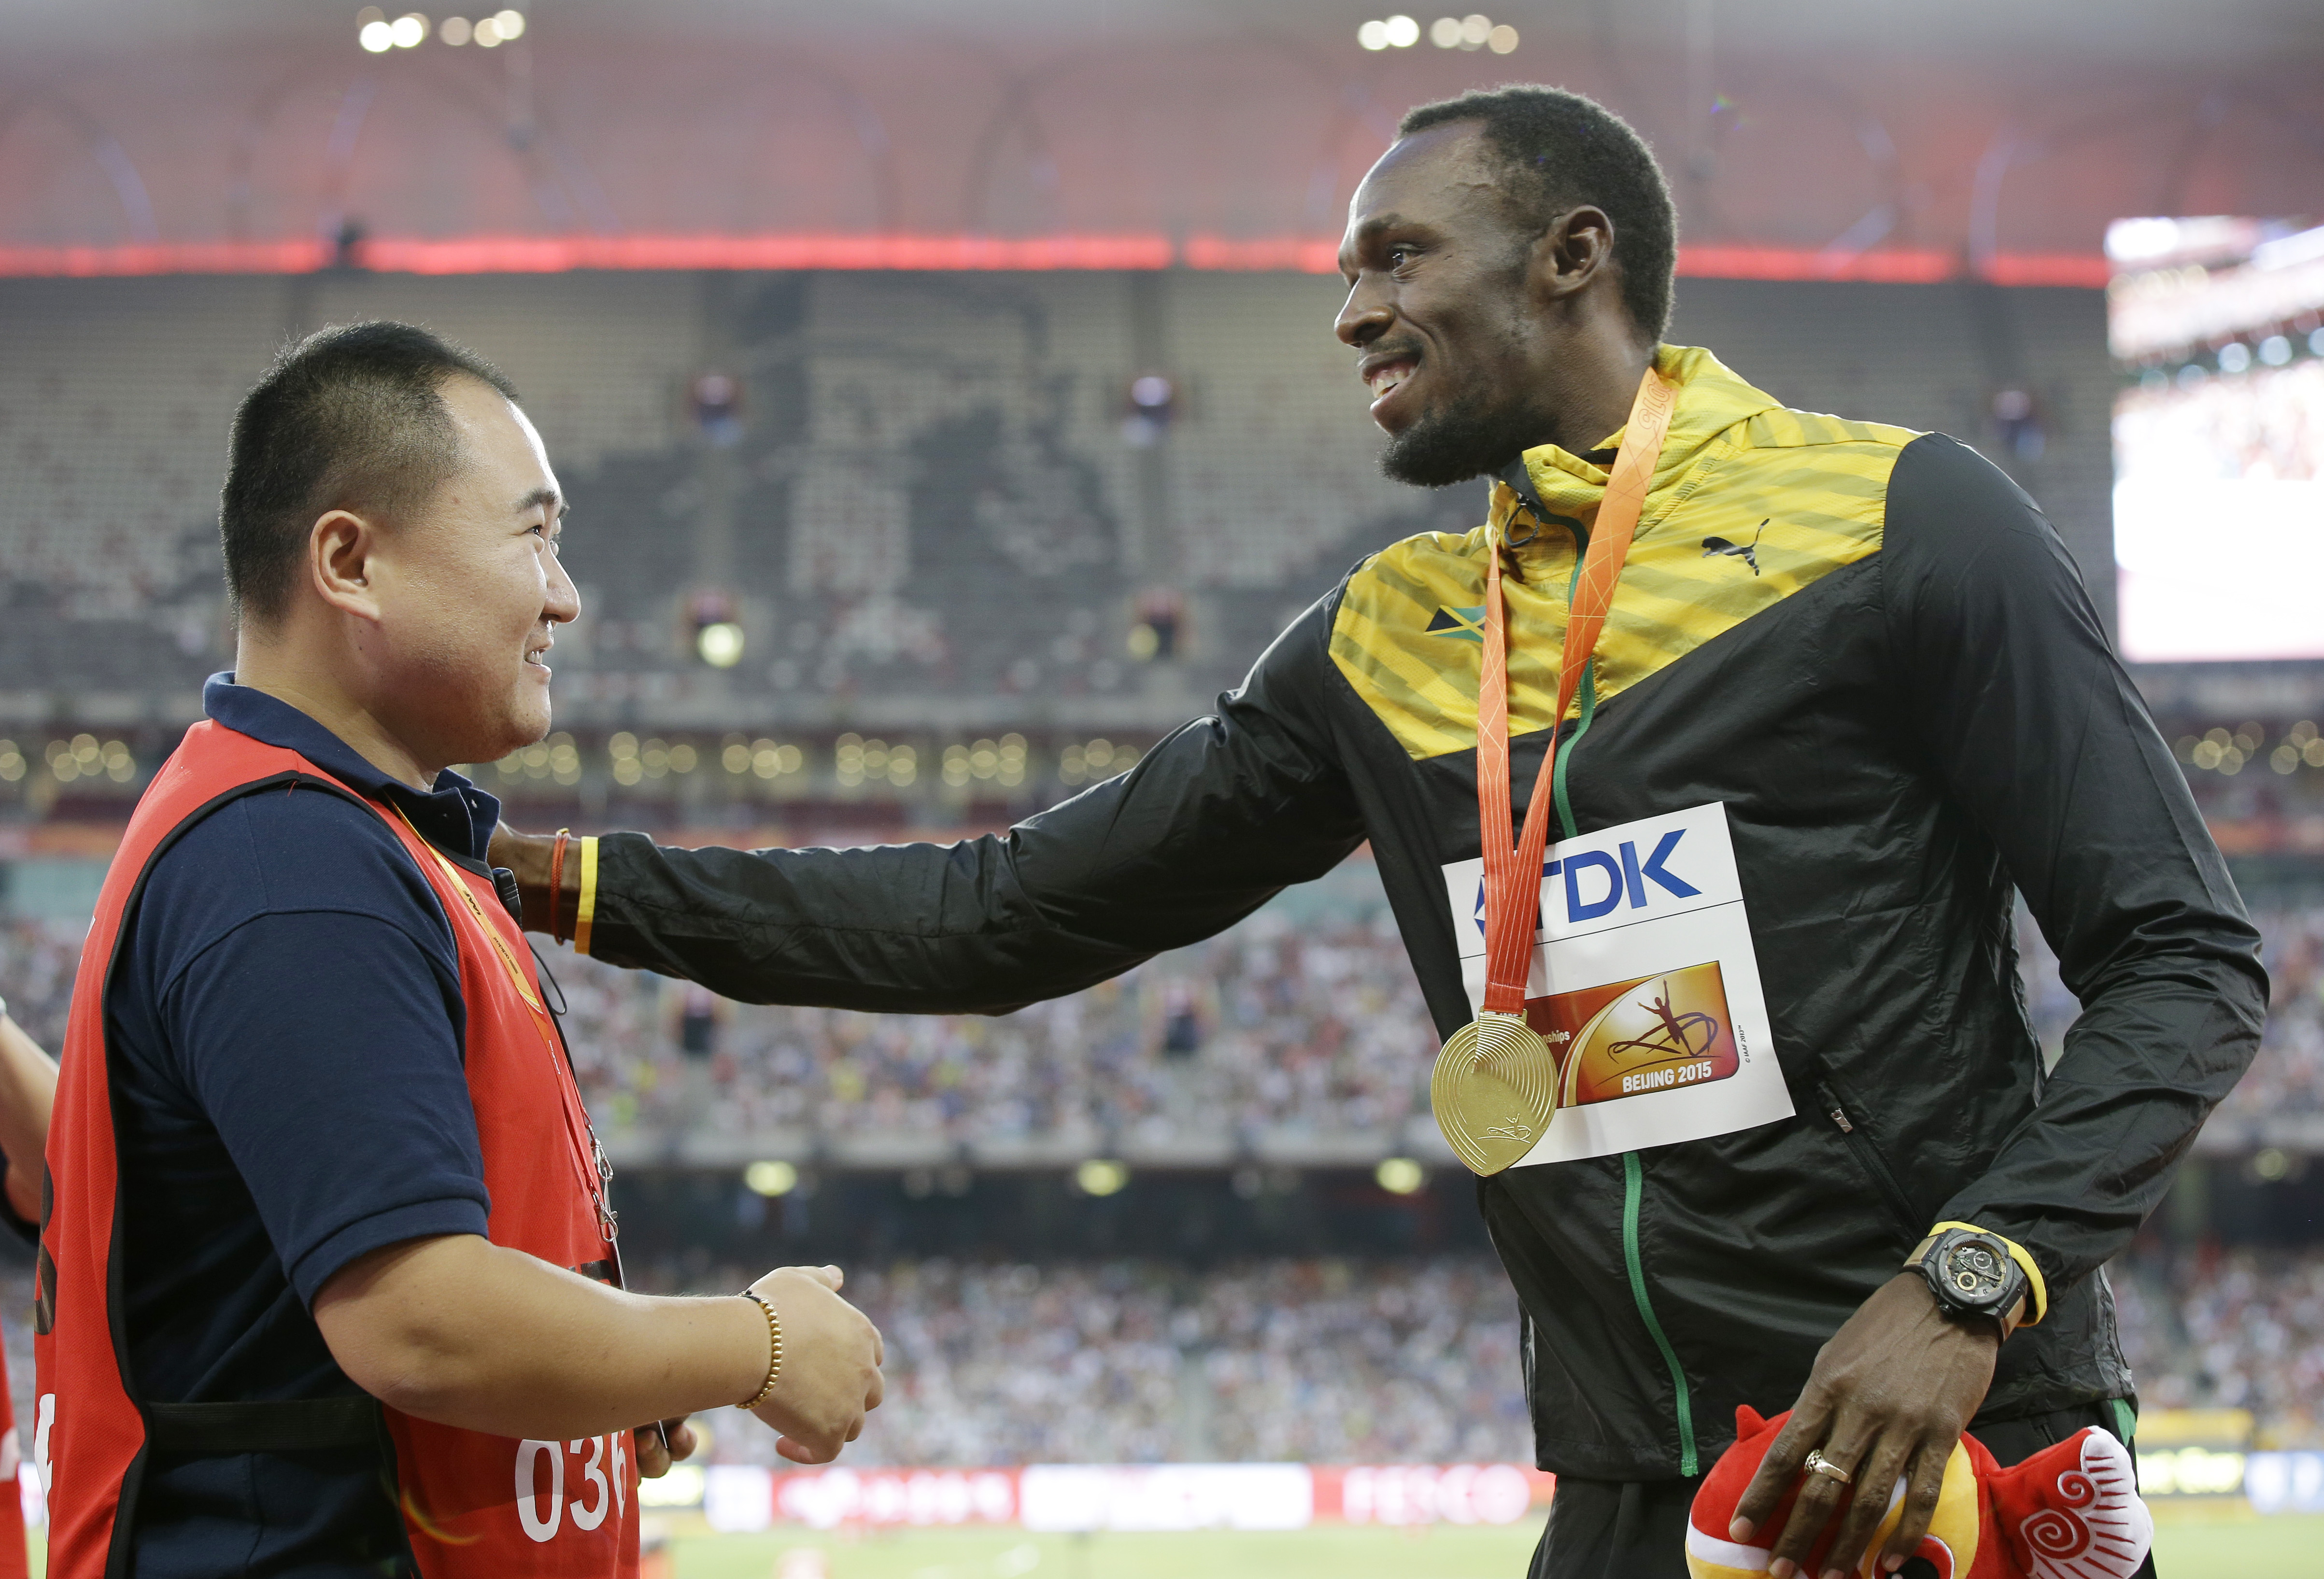 Jamaica's Usain Bolt, left, receives a gift from the cameraman who hit Bolt with a segway after the 200m final on Aug. 27.